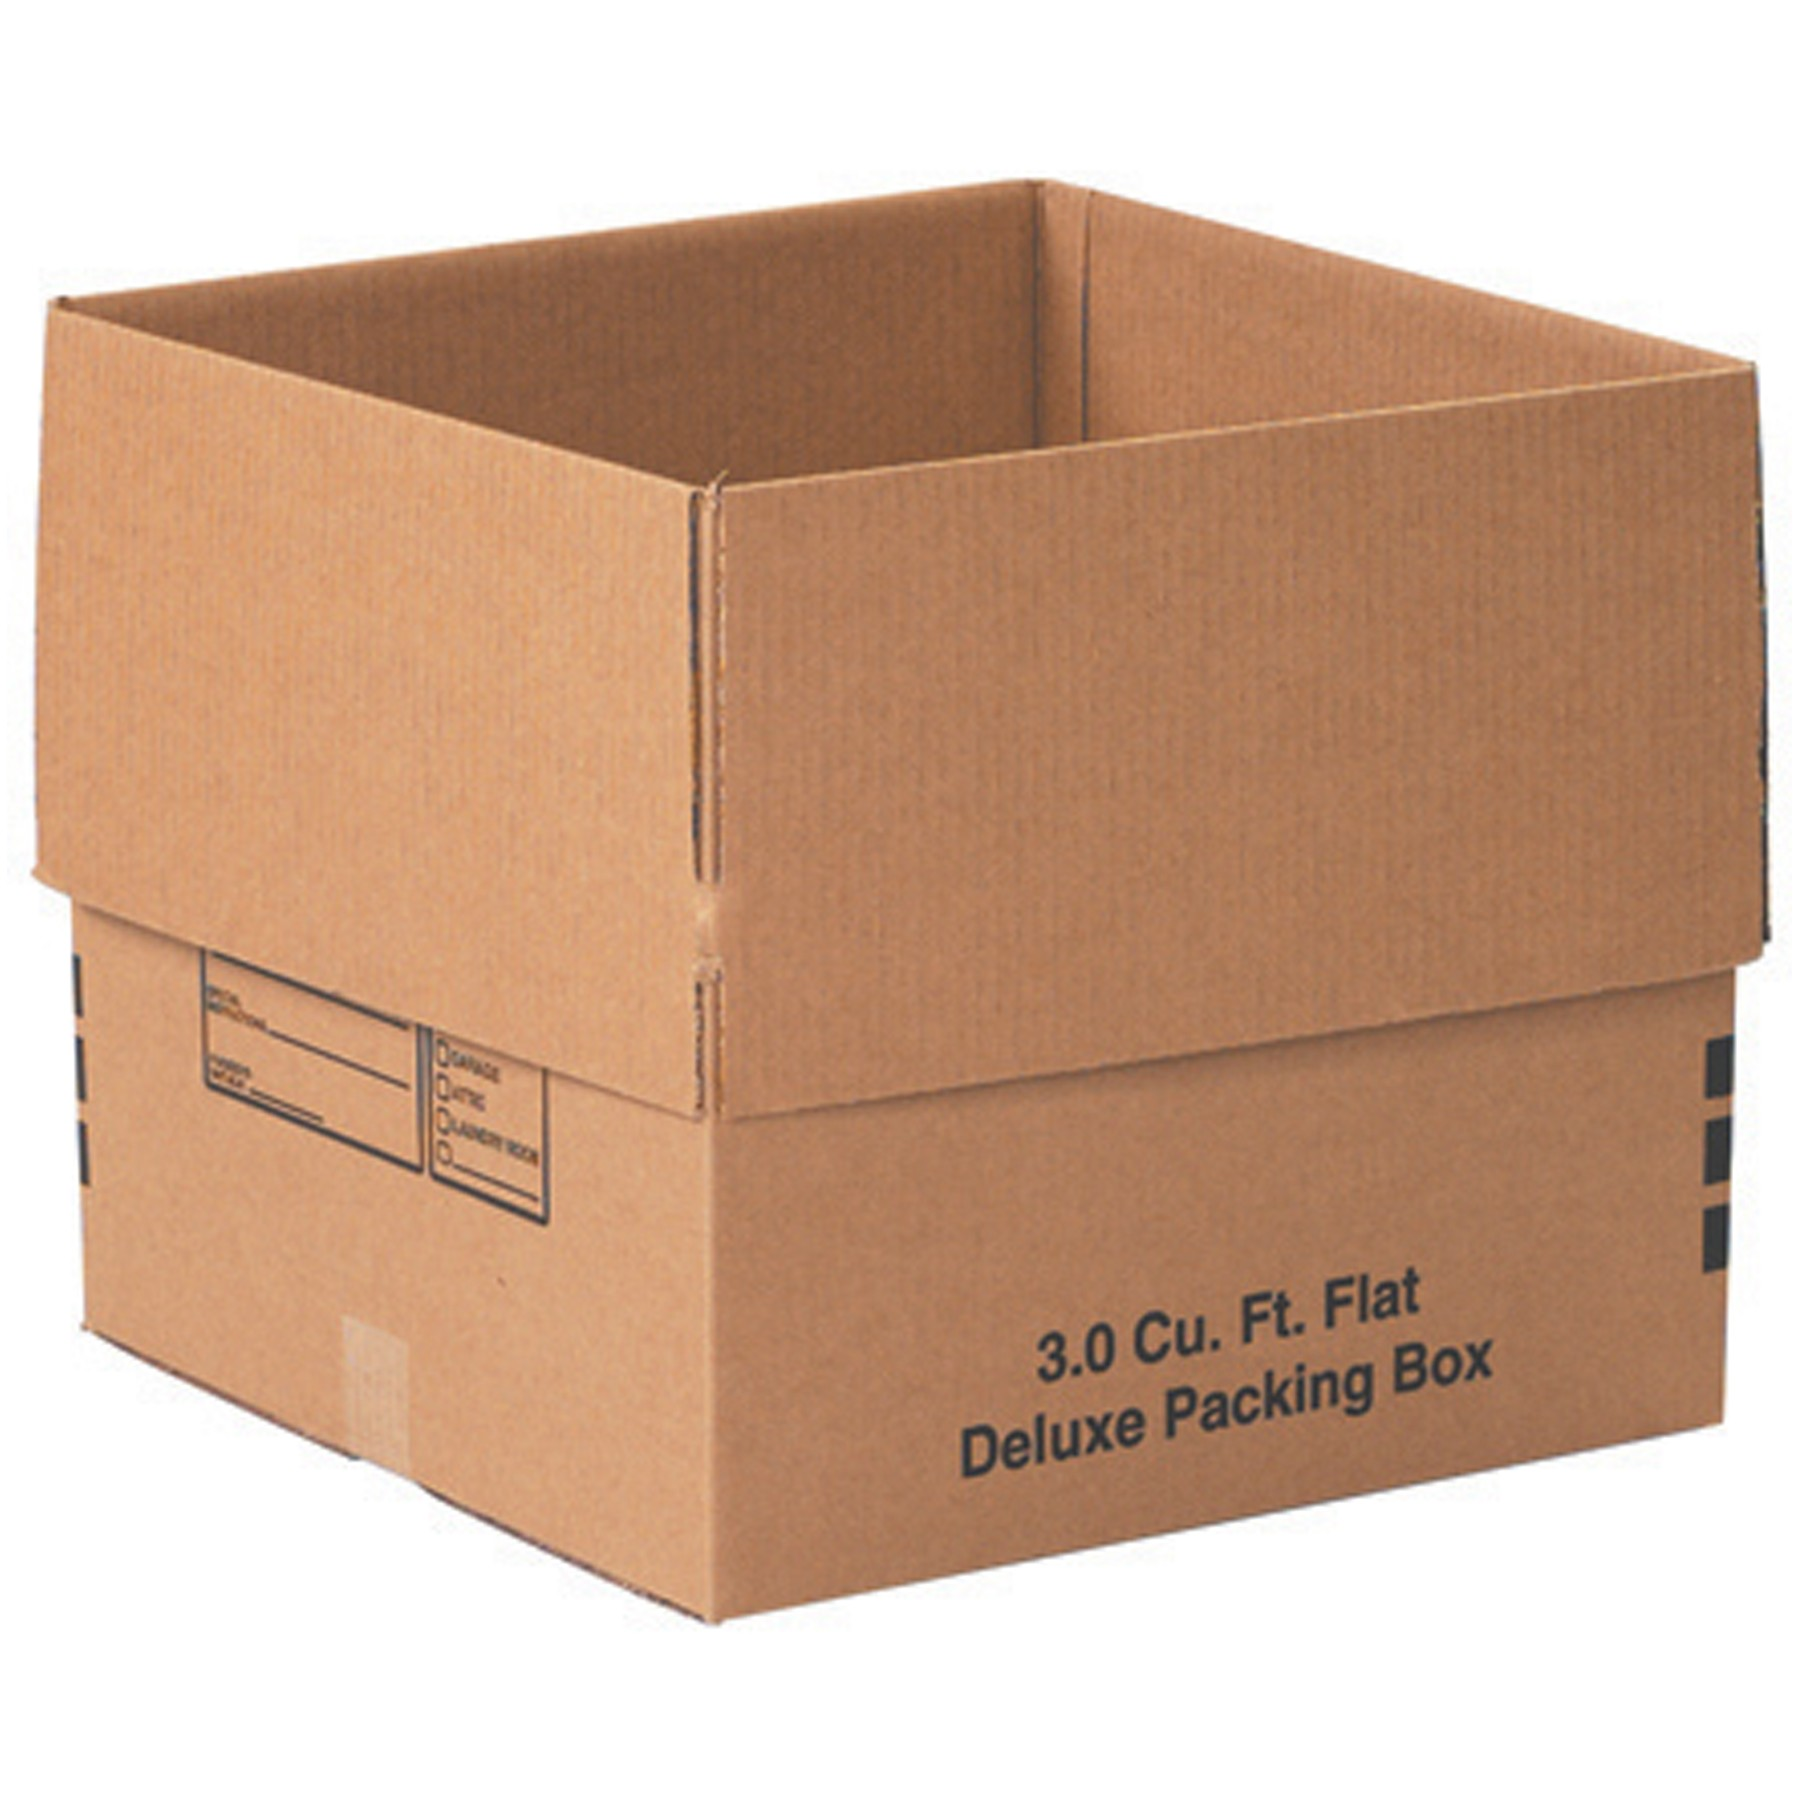 "12 Premium Medium Moving Boxes 18x18x16"" Cardboard Box - Walmart.com"